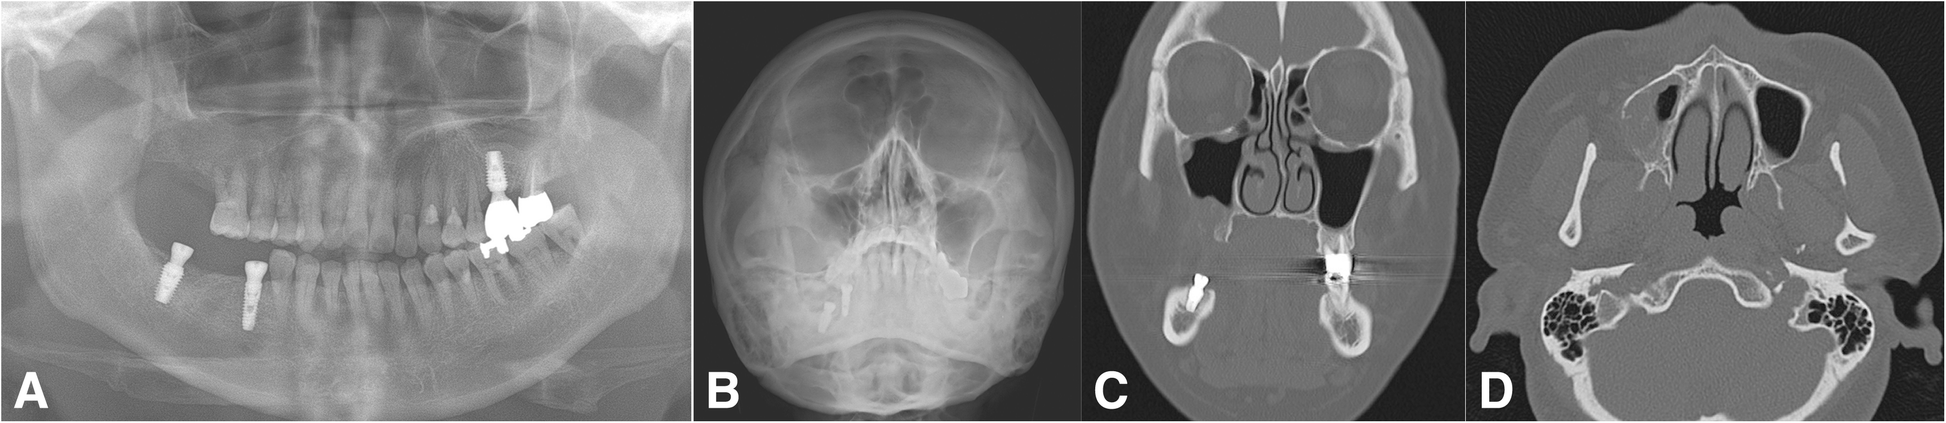 Definition and management of odontogenic maxillary sinusitis